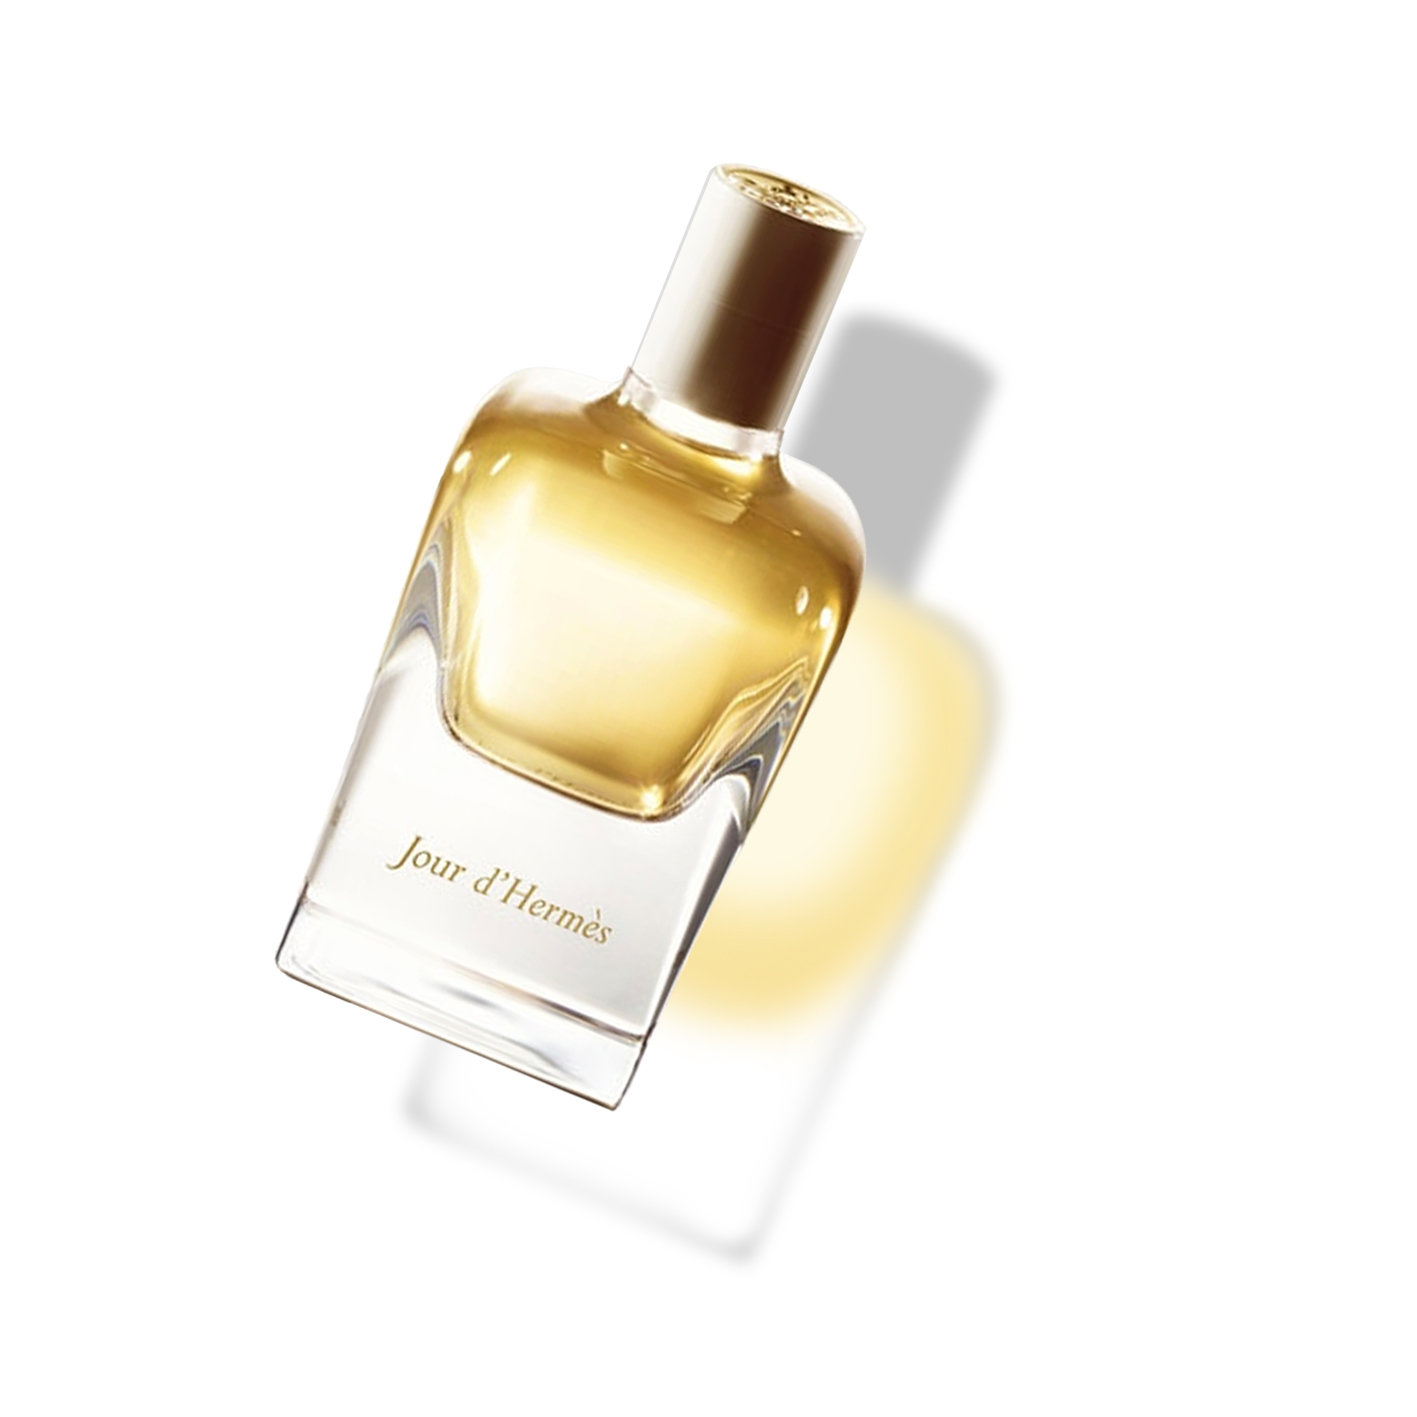 fe2e65a18 Jour D'Hermes is a floral fragrance released in 2013 for the woman who  finds the joy in life and wants to share it with others.